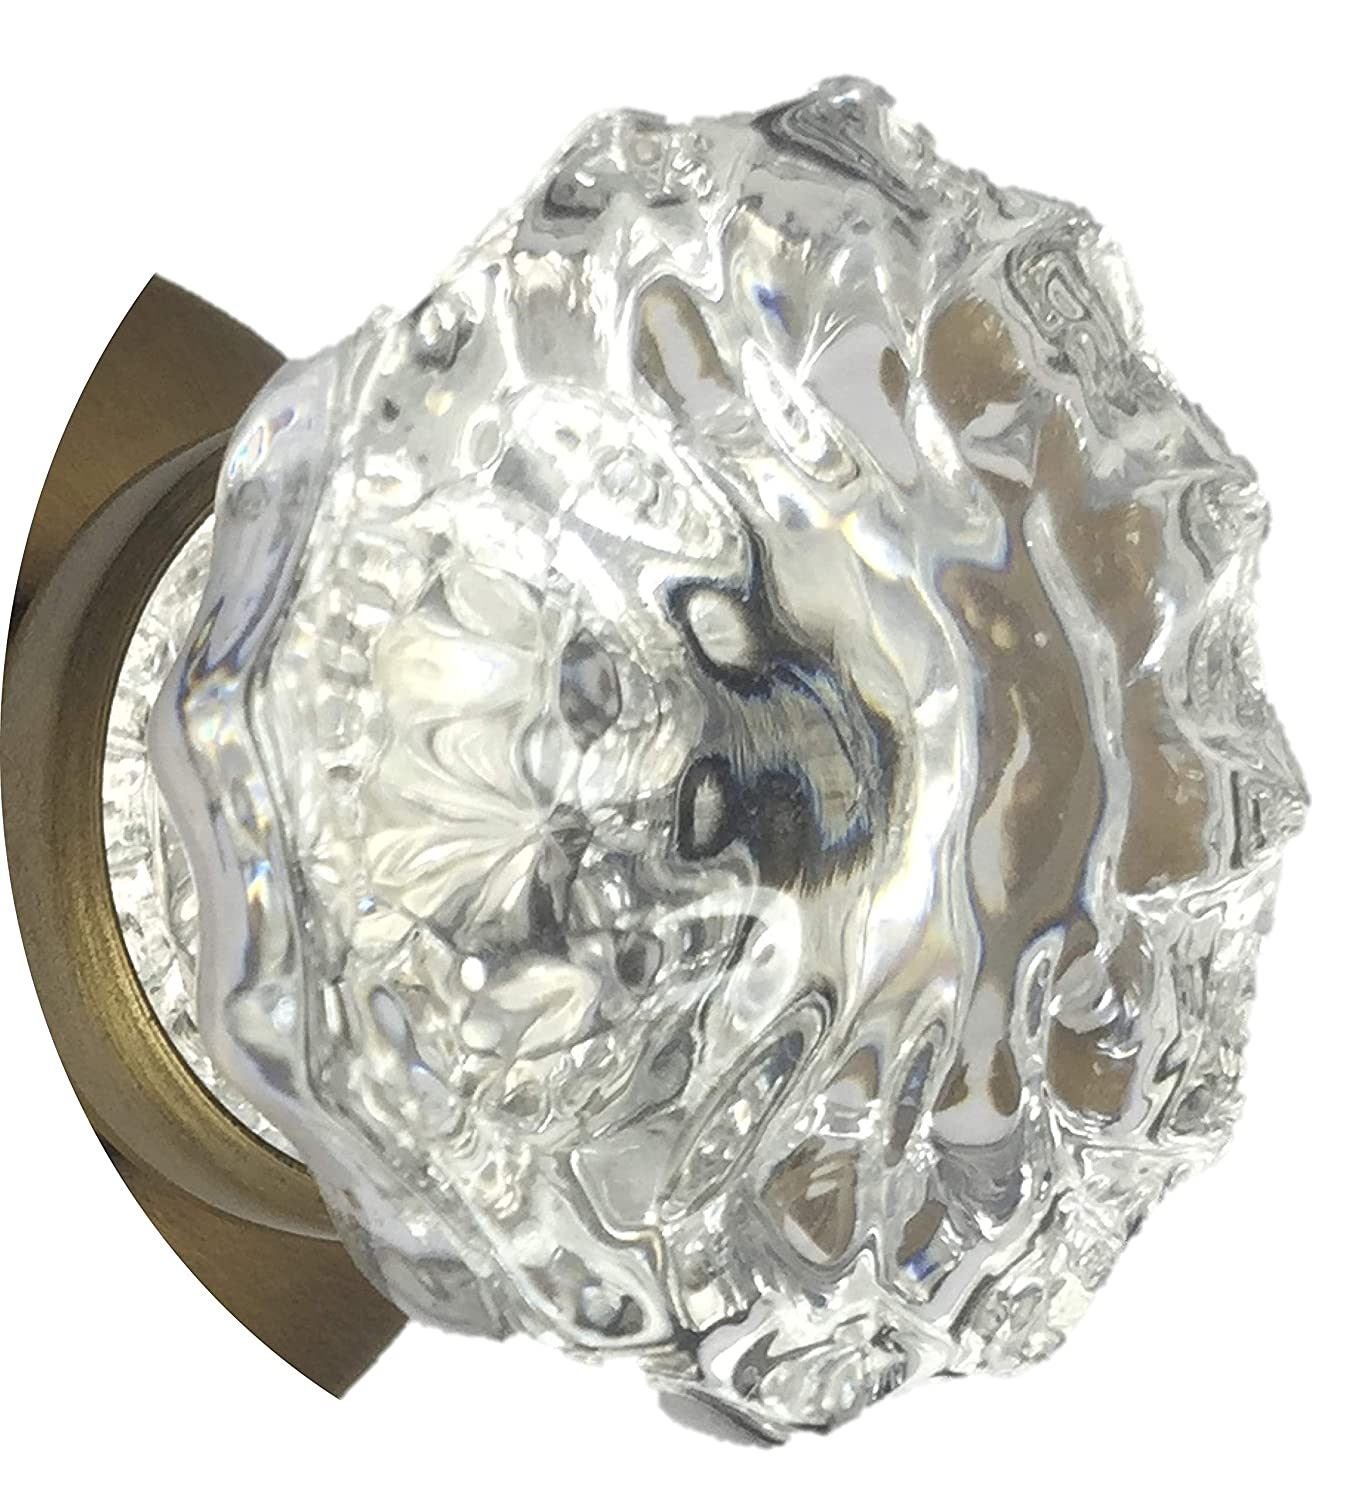 Perfect Replica of the most popular Antique Knobs that they are interchangeable with the Antiques Depression Crystal /& Antique Brass stem with set screws and spindles 1 pair includes premium spindle RoussoUSA 2AB 2 Knobs